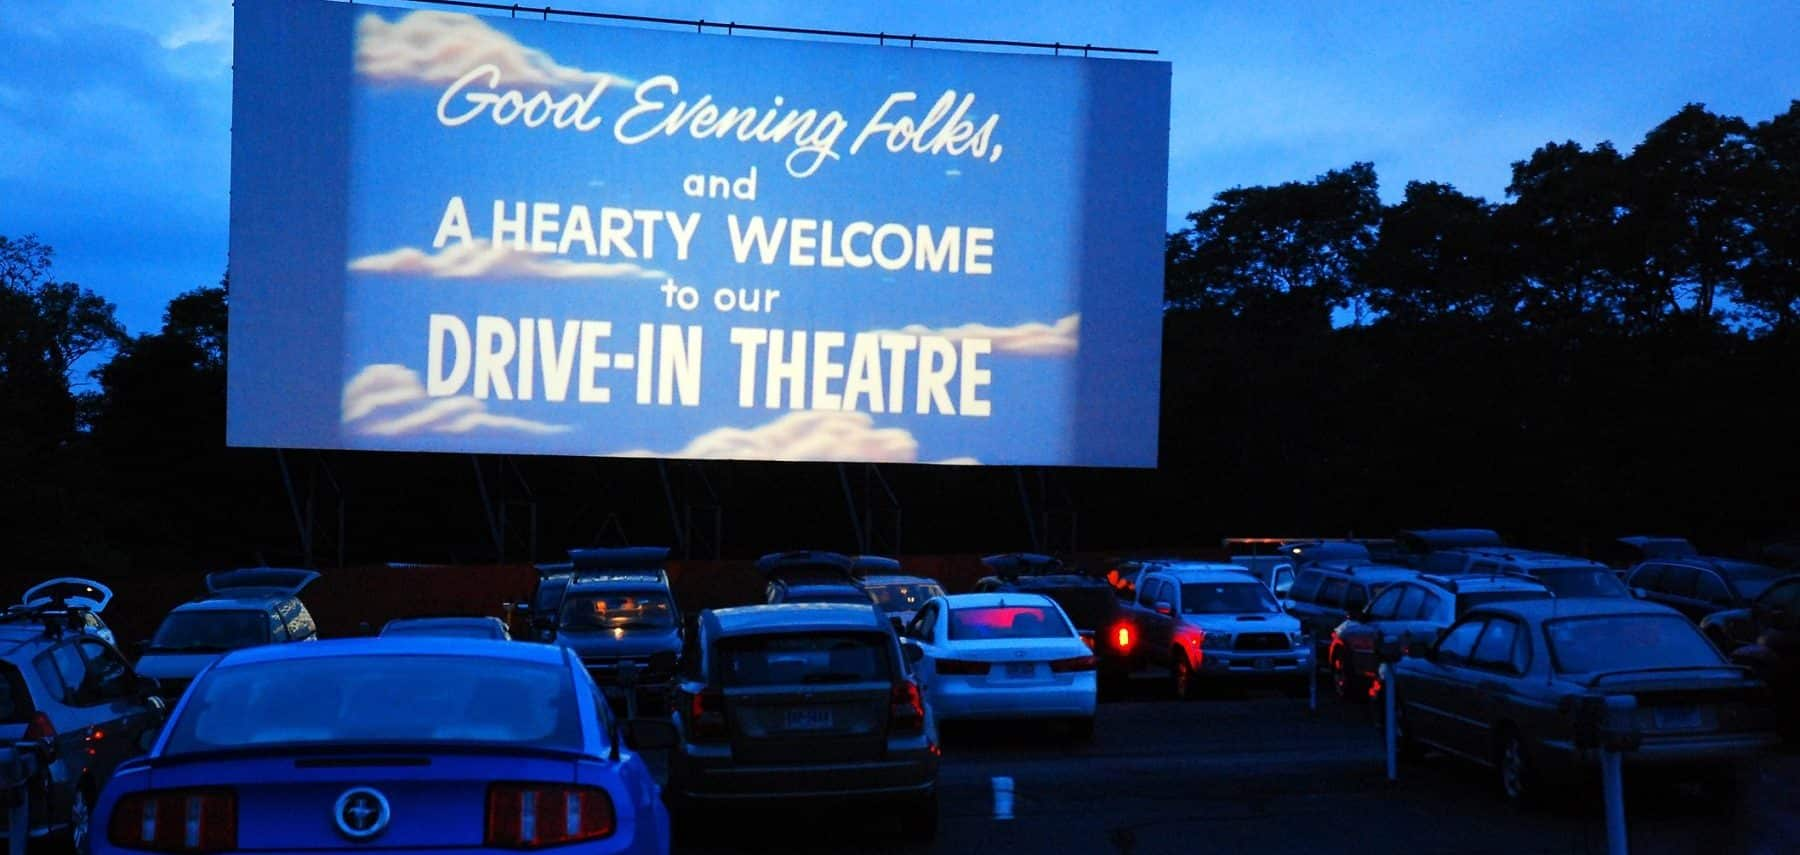 "Cars parked in front of the Wellfleet Drive-In Theatre with the screen displaying ""Good Evening Folks, and a Hearty Welcome to our Drive-In Theatre"""